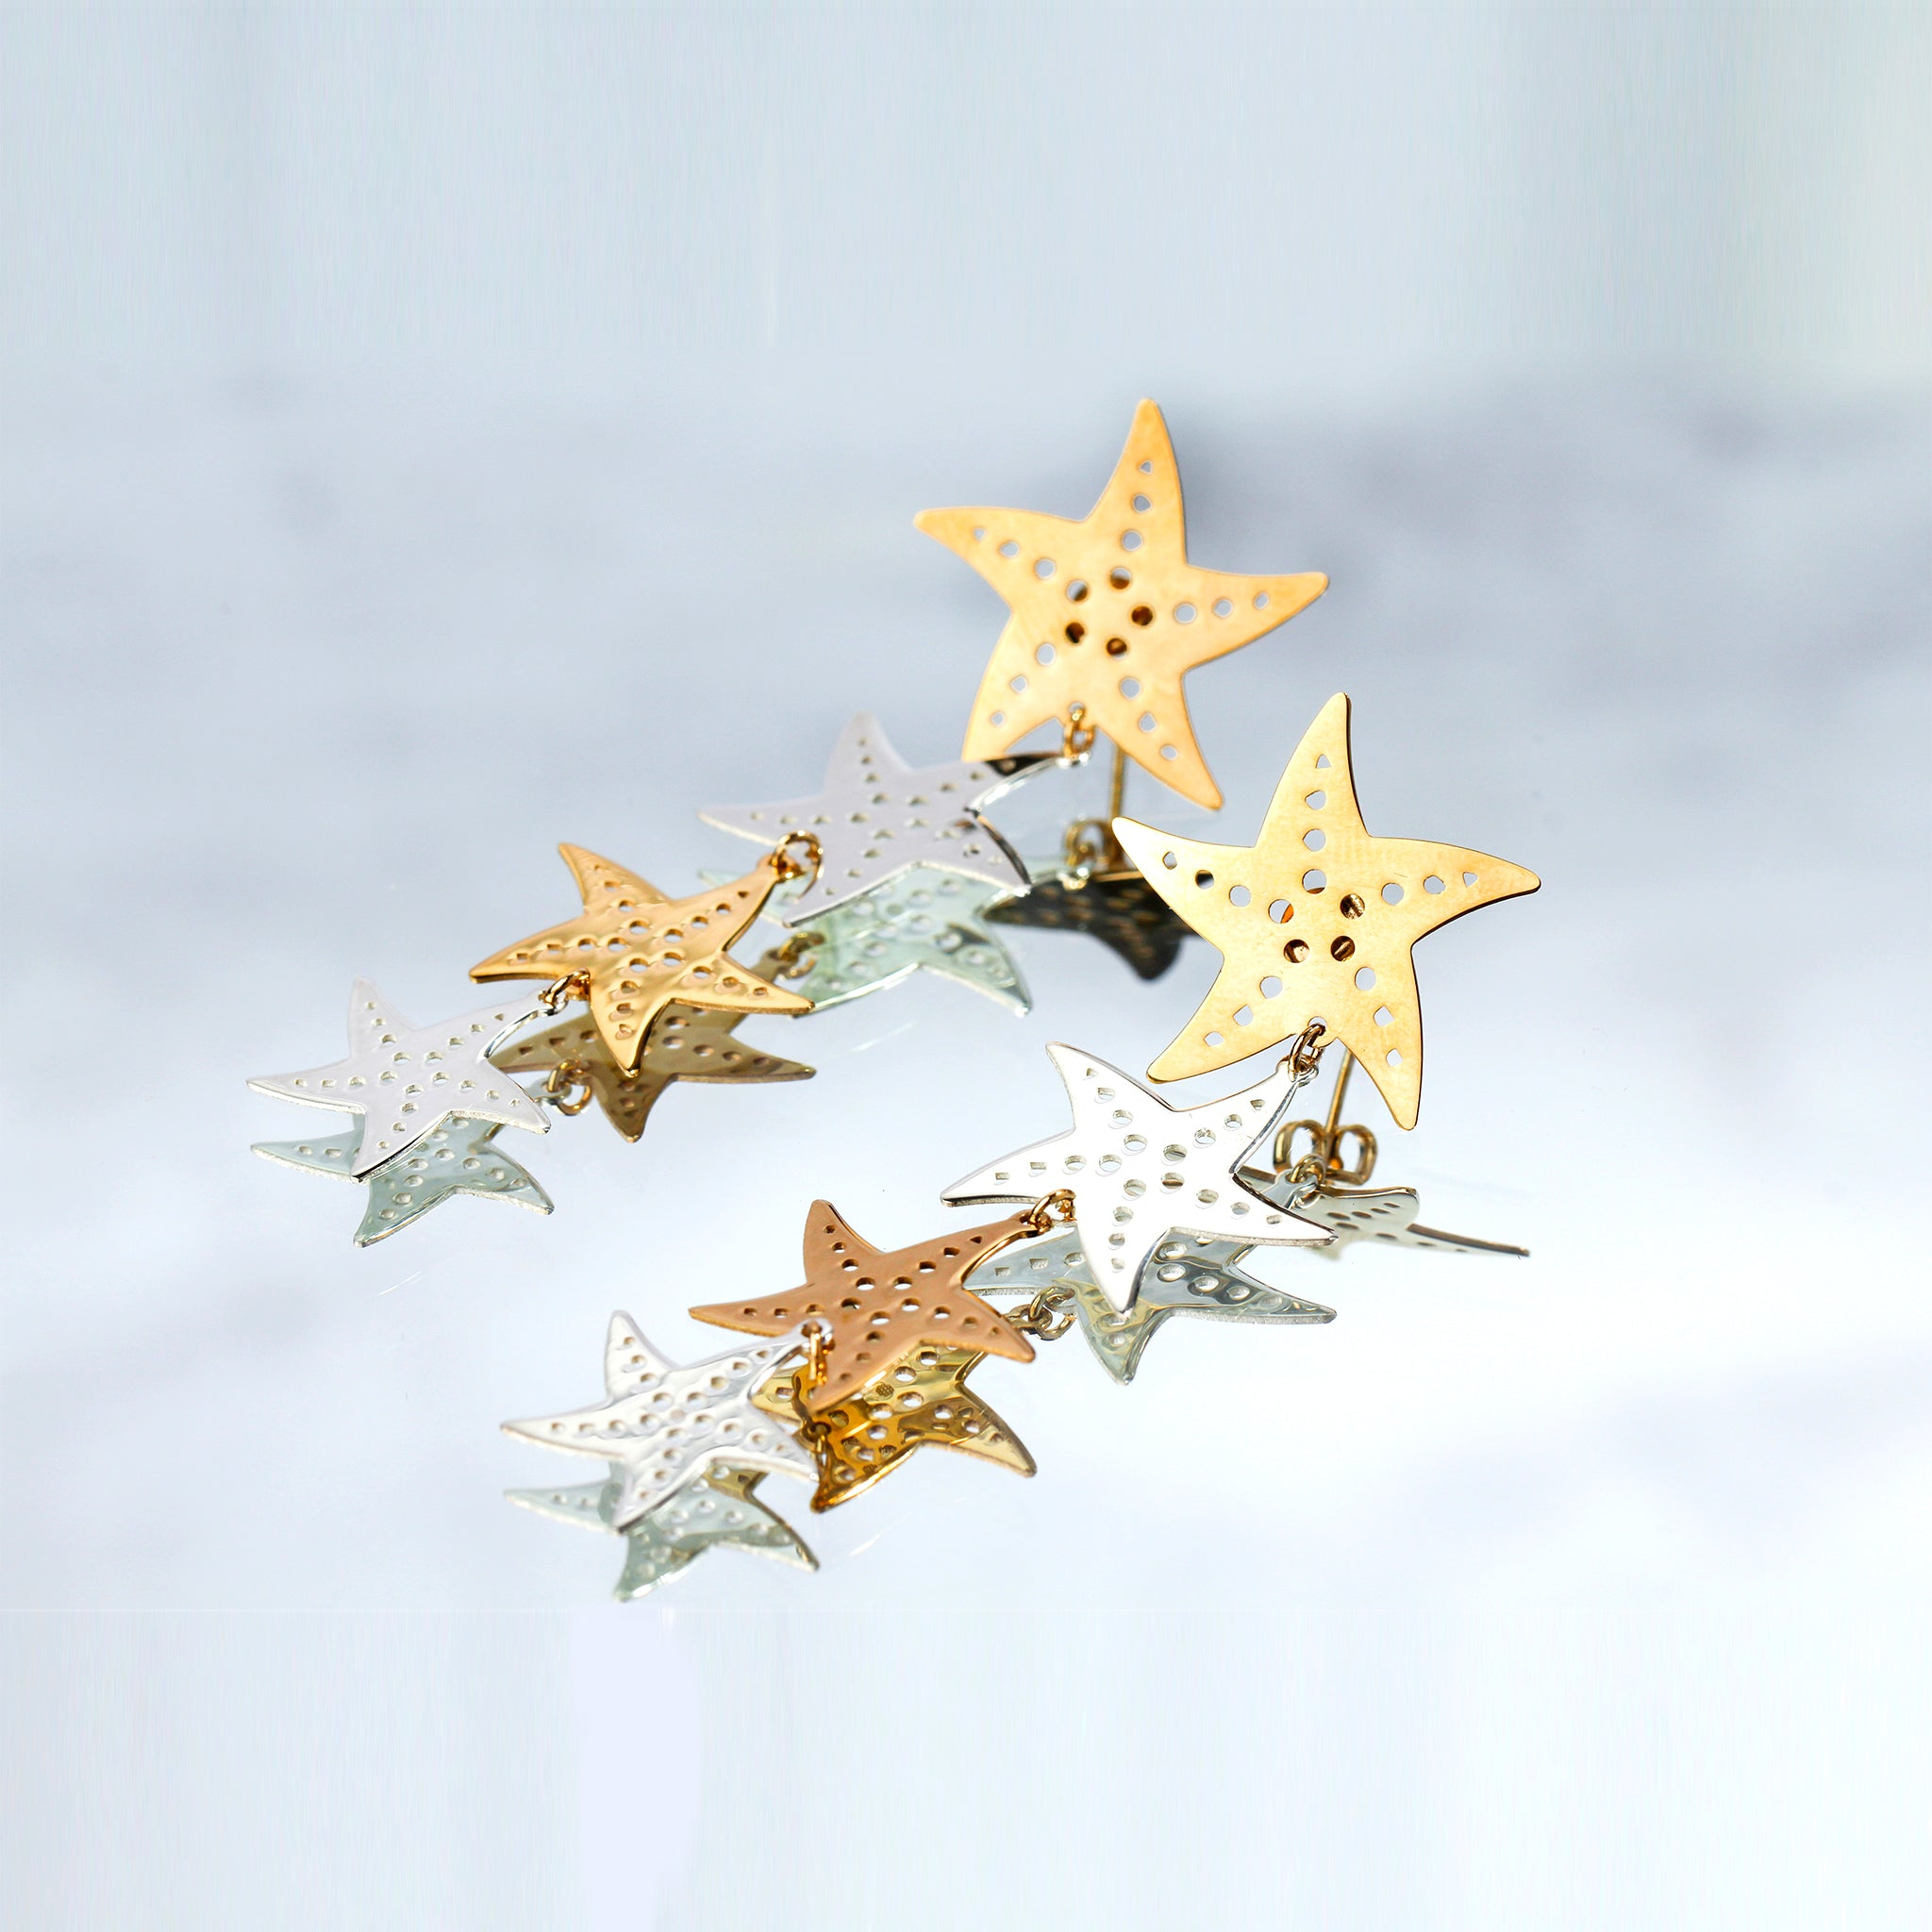 MillieJewelry  - Millié Jewelry - Starfish Statement Earrings - Aretes - Diseño Mexicano - Hecho en México